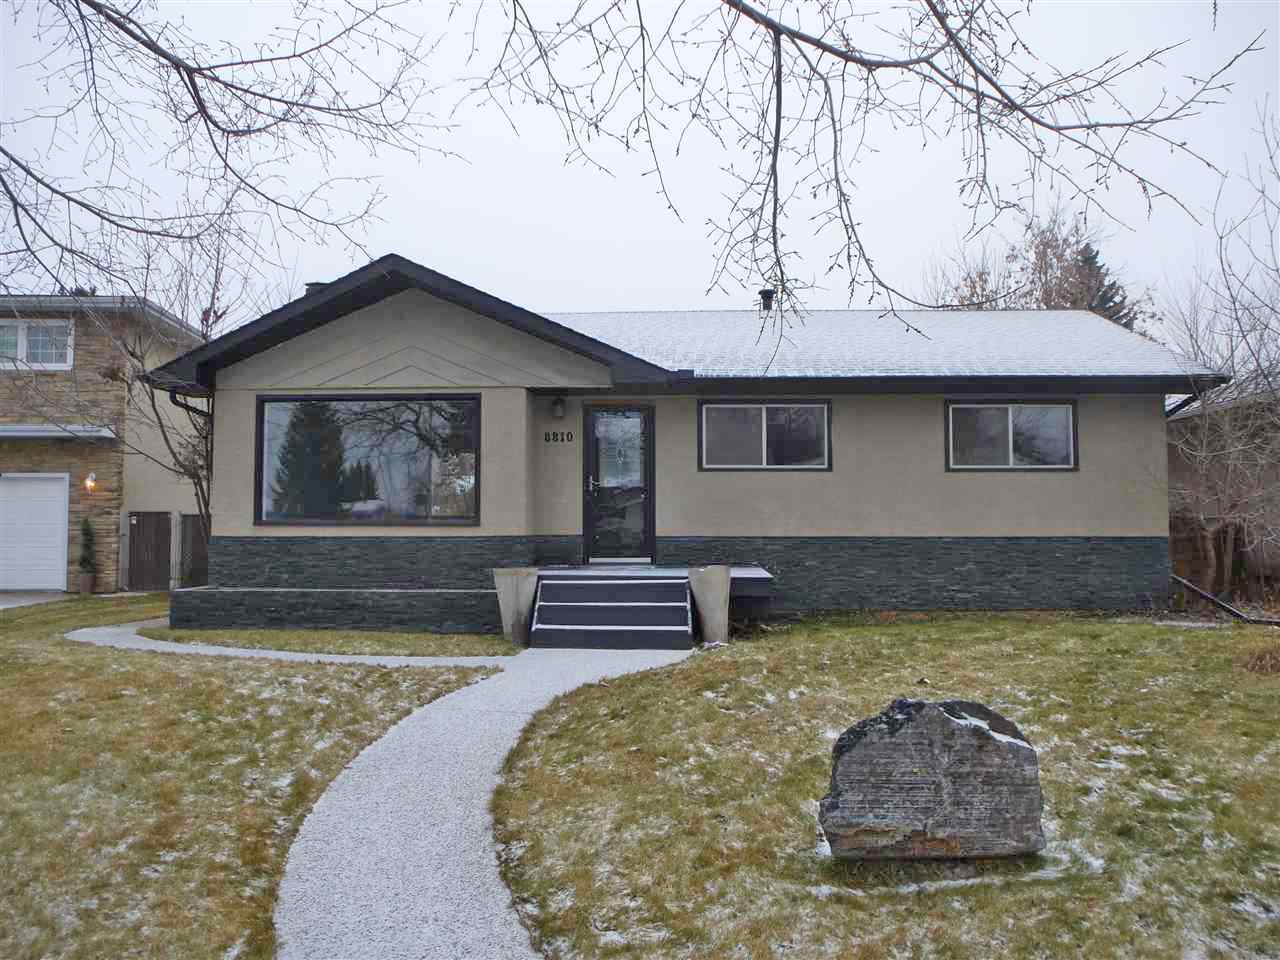 Photo 1: 8810 159A ST NW in Edmonton: Zone 22 House for sale : MLS(r) # E4044366